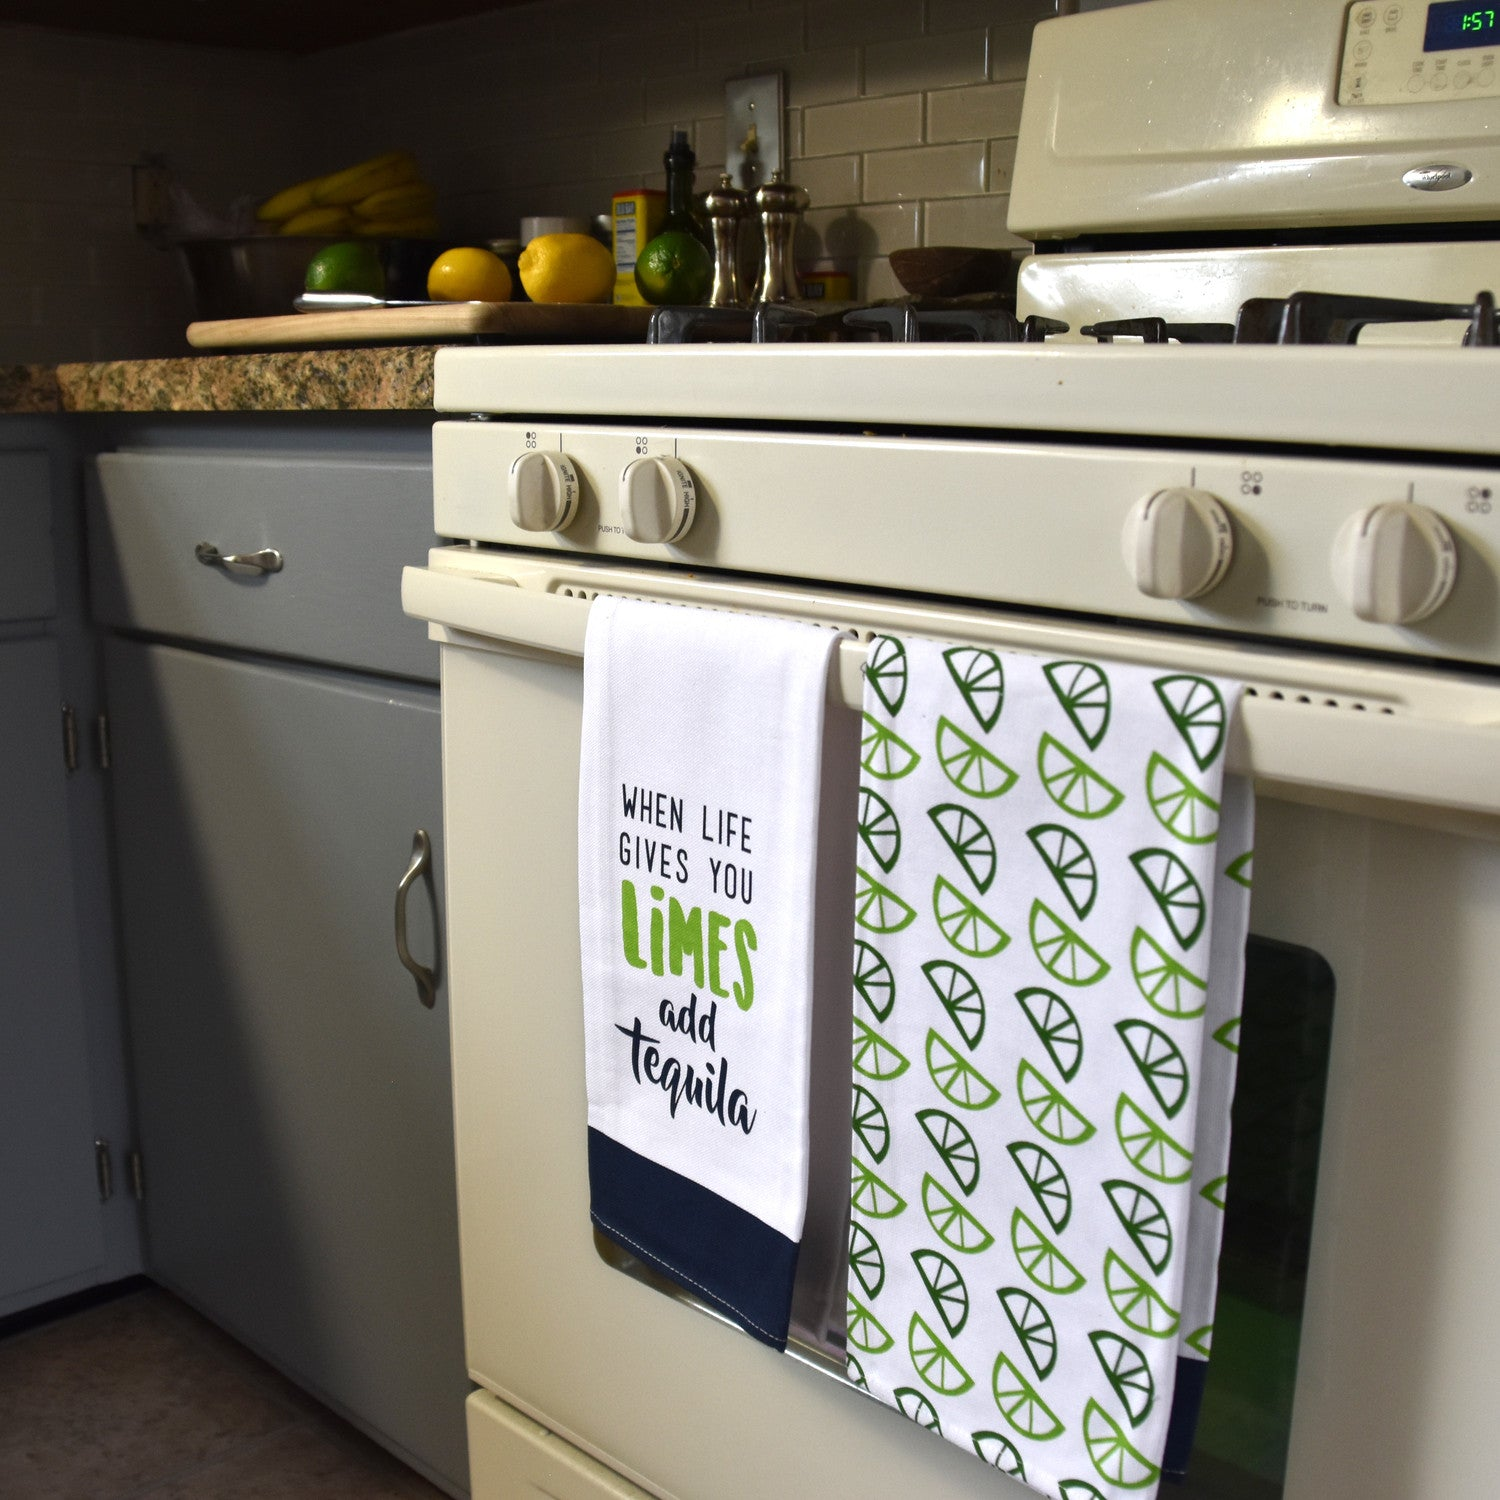 When Life Gives You Limes Add Tequila Tea Towel Gift Set Beloved